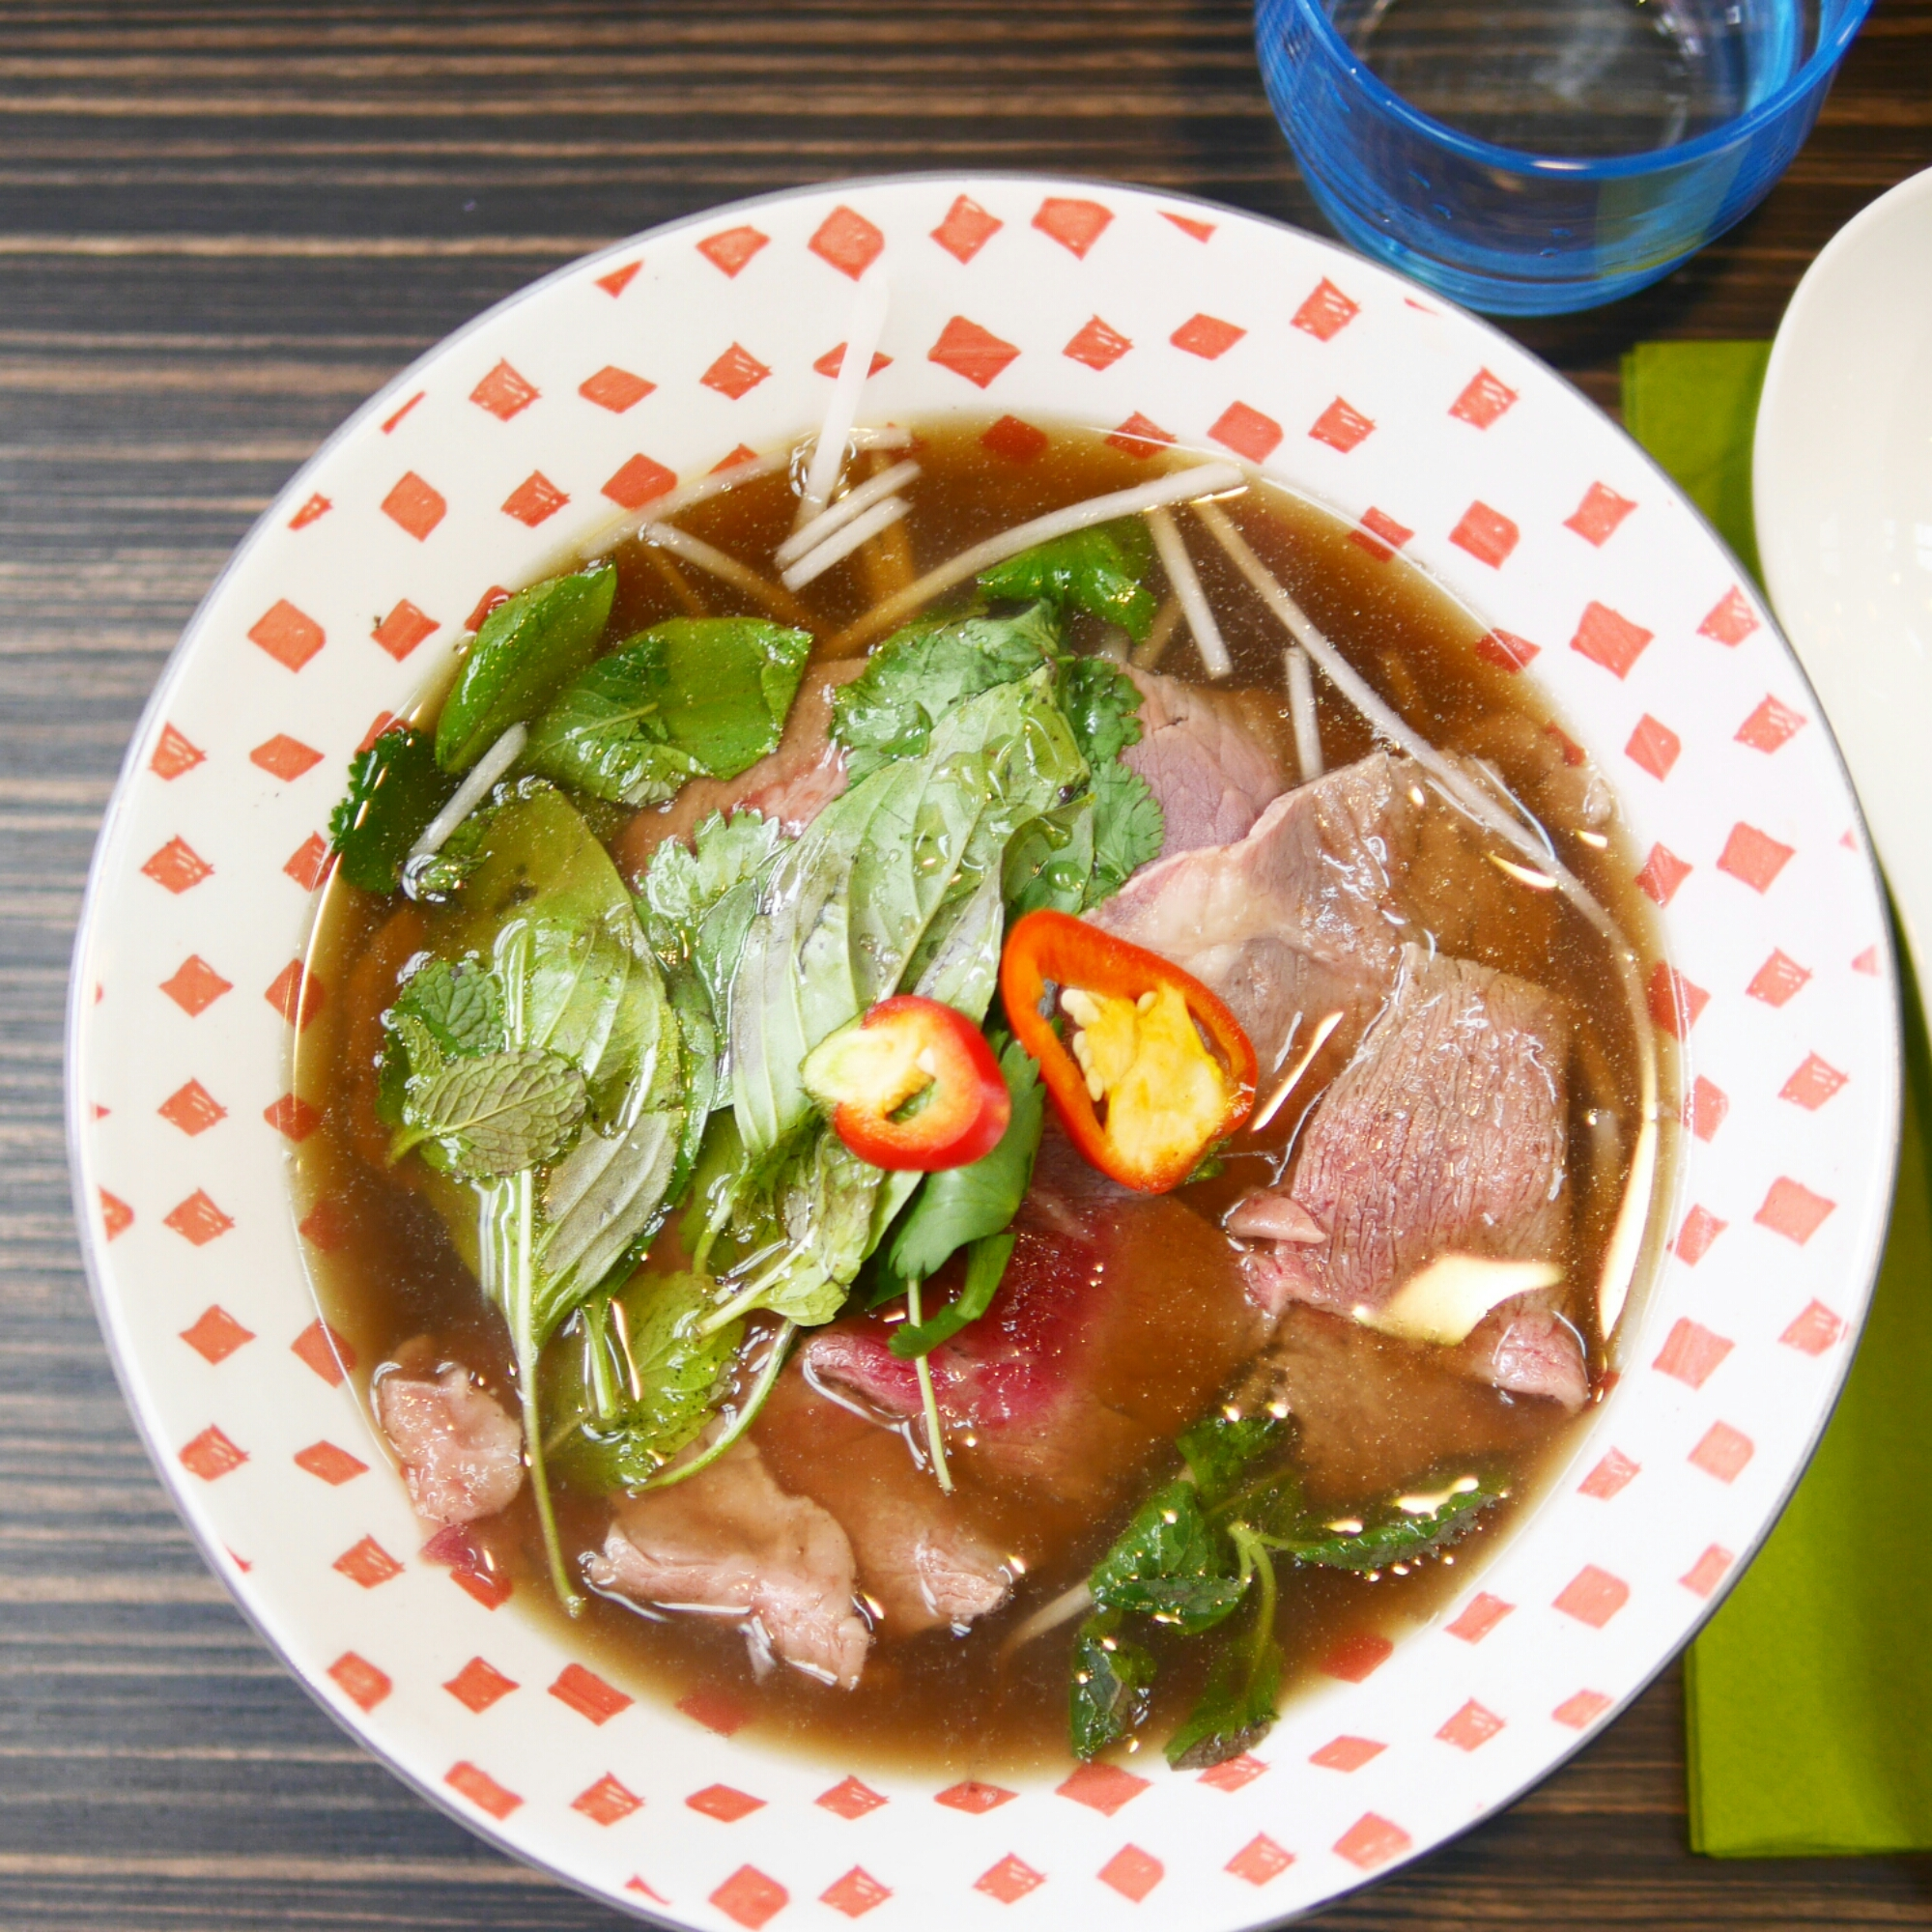 3 Casual Spots for a Satisfying Bowl of Beef Pho